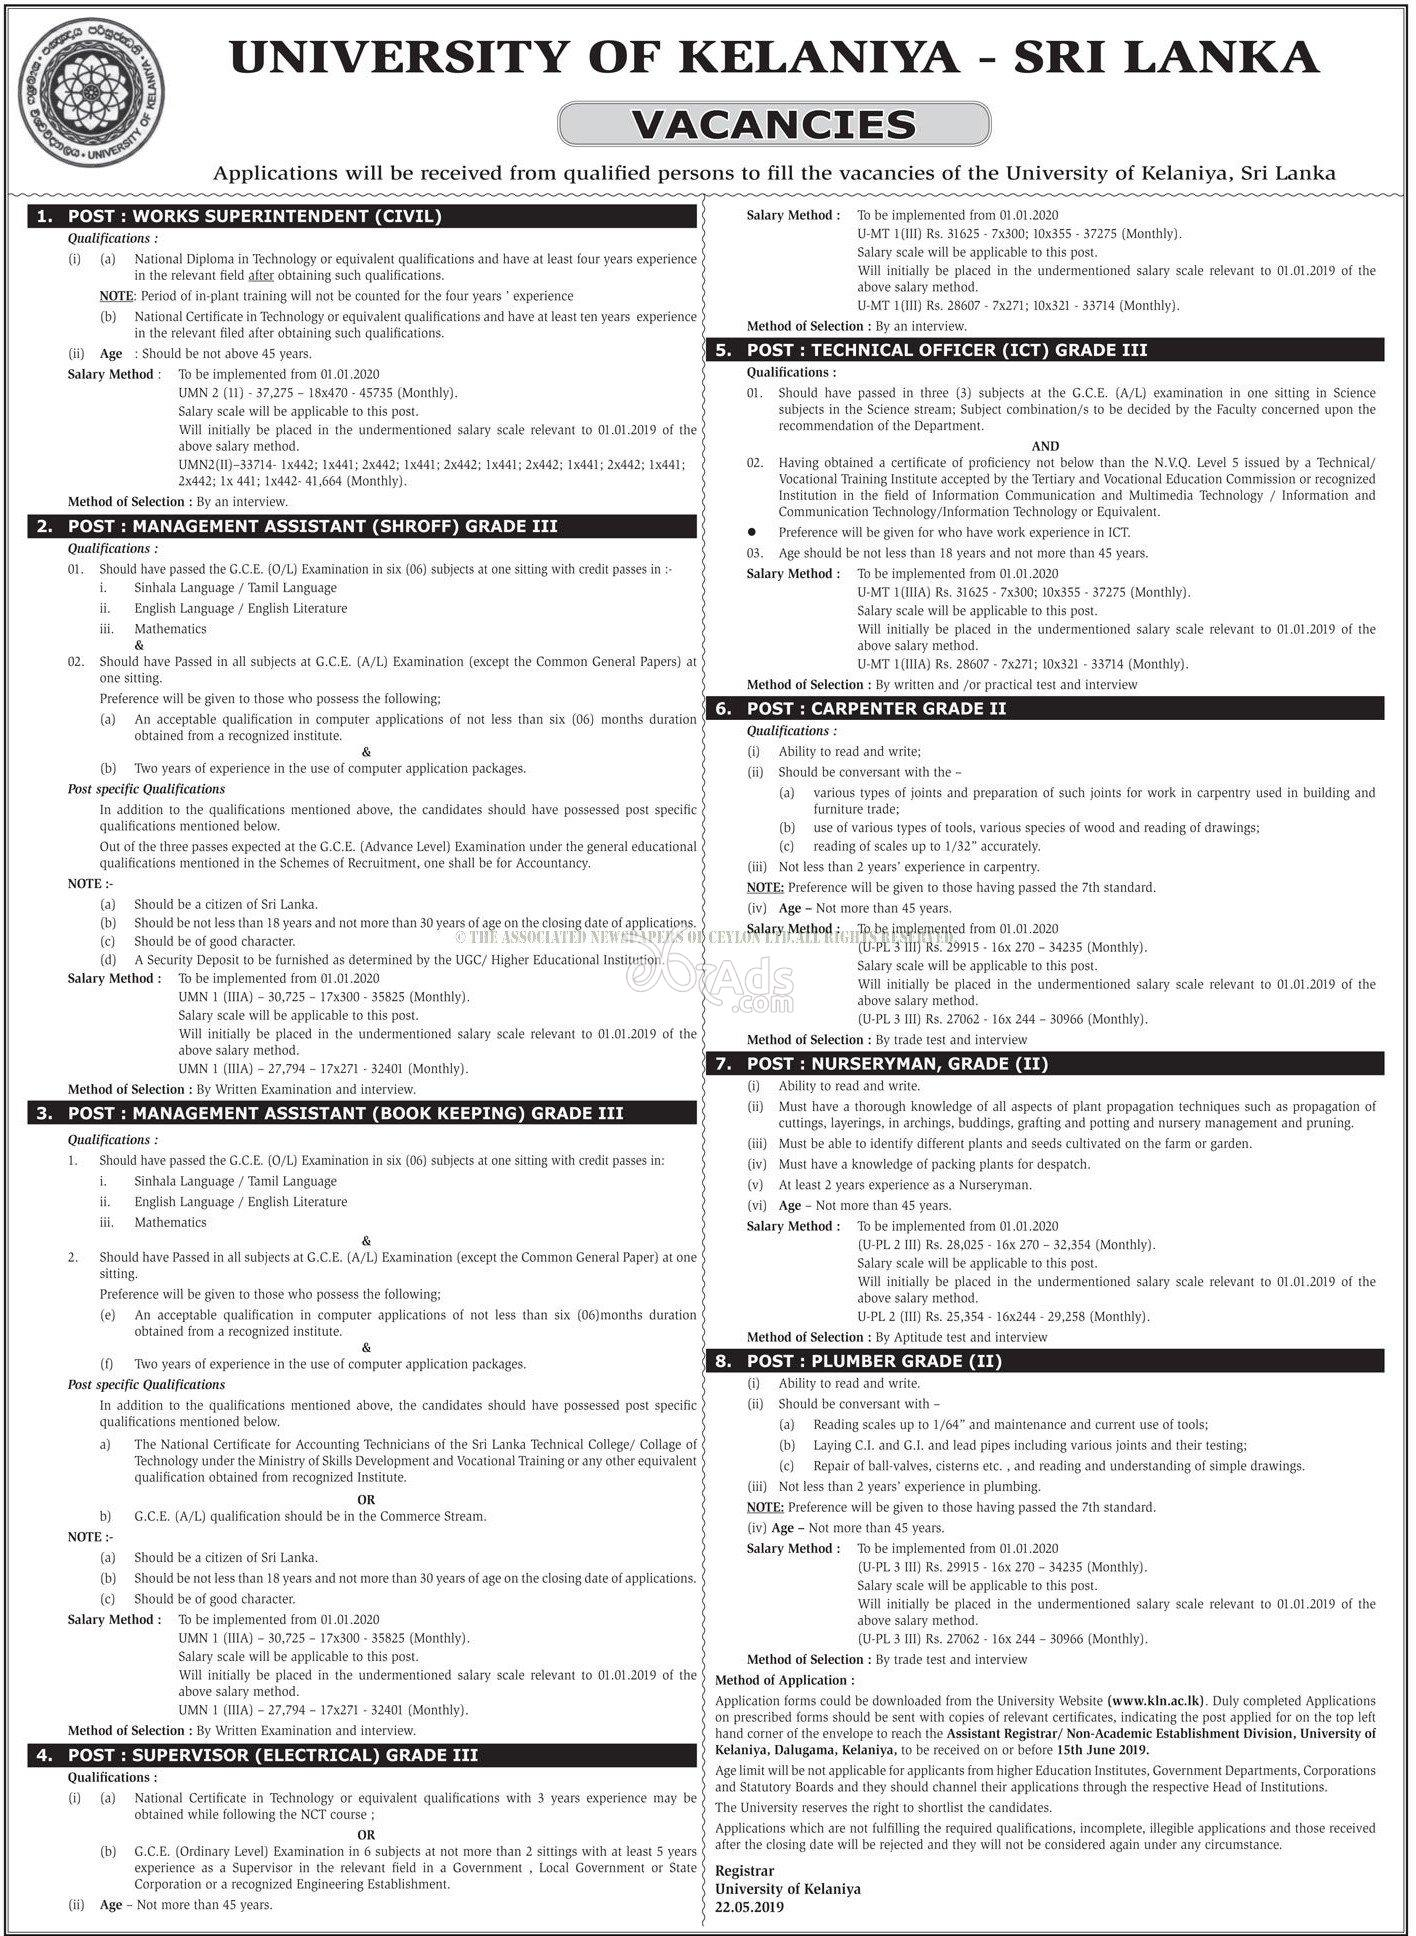 Supervisors, Management Assistant, Technical Officers